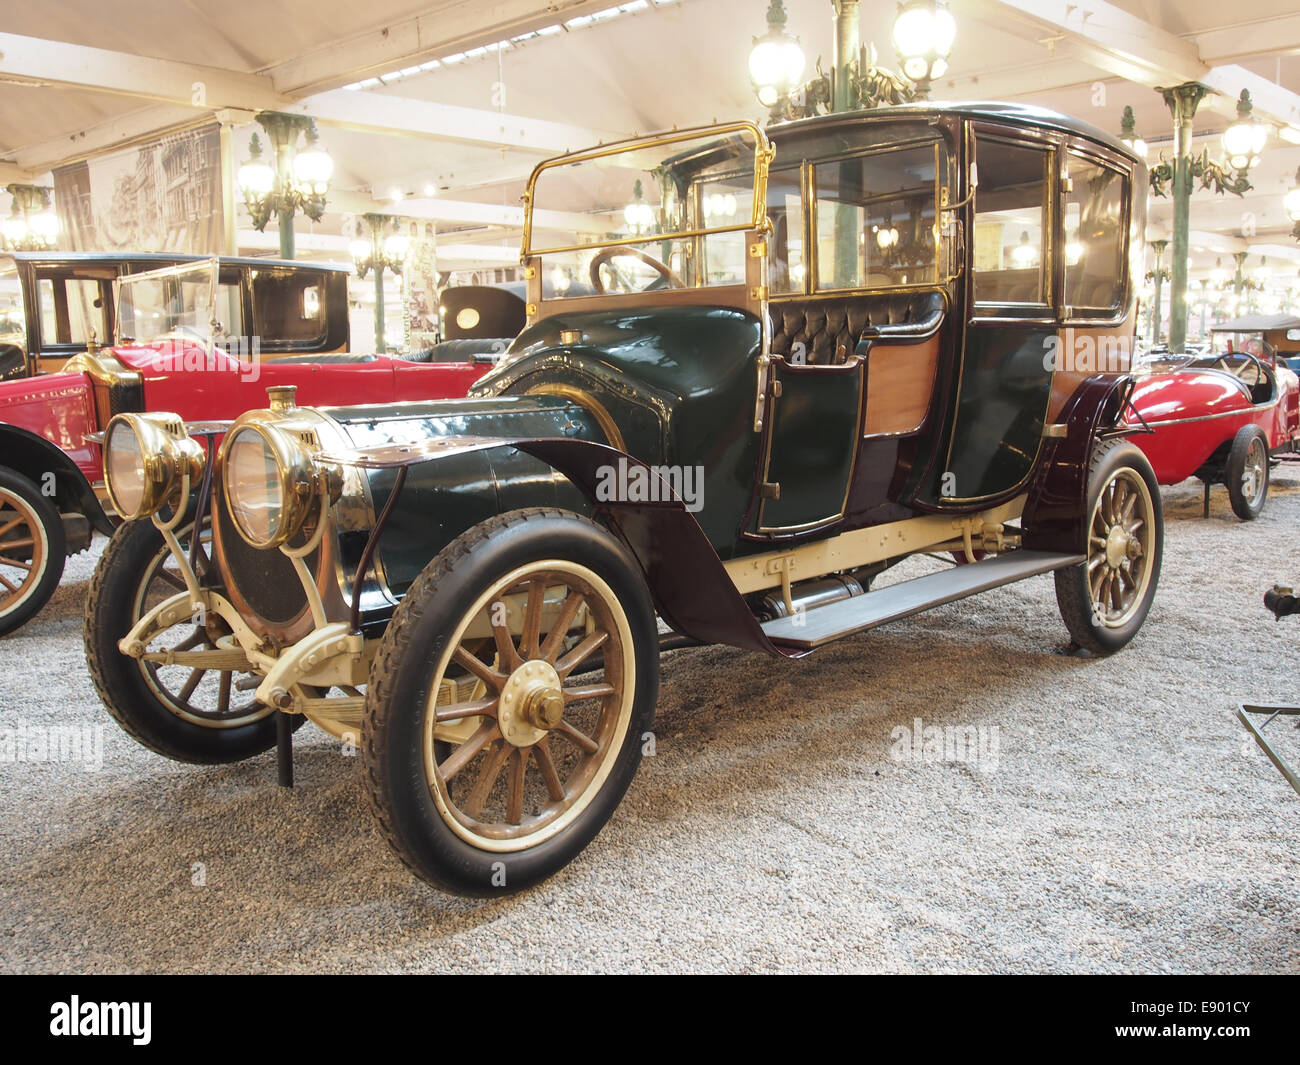 Garage Moderne Belleville 1912 Delaunay Stock Photos 1912 Delaunay Stock Images Alamy